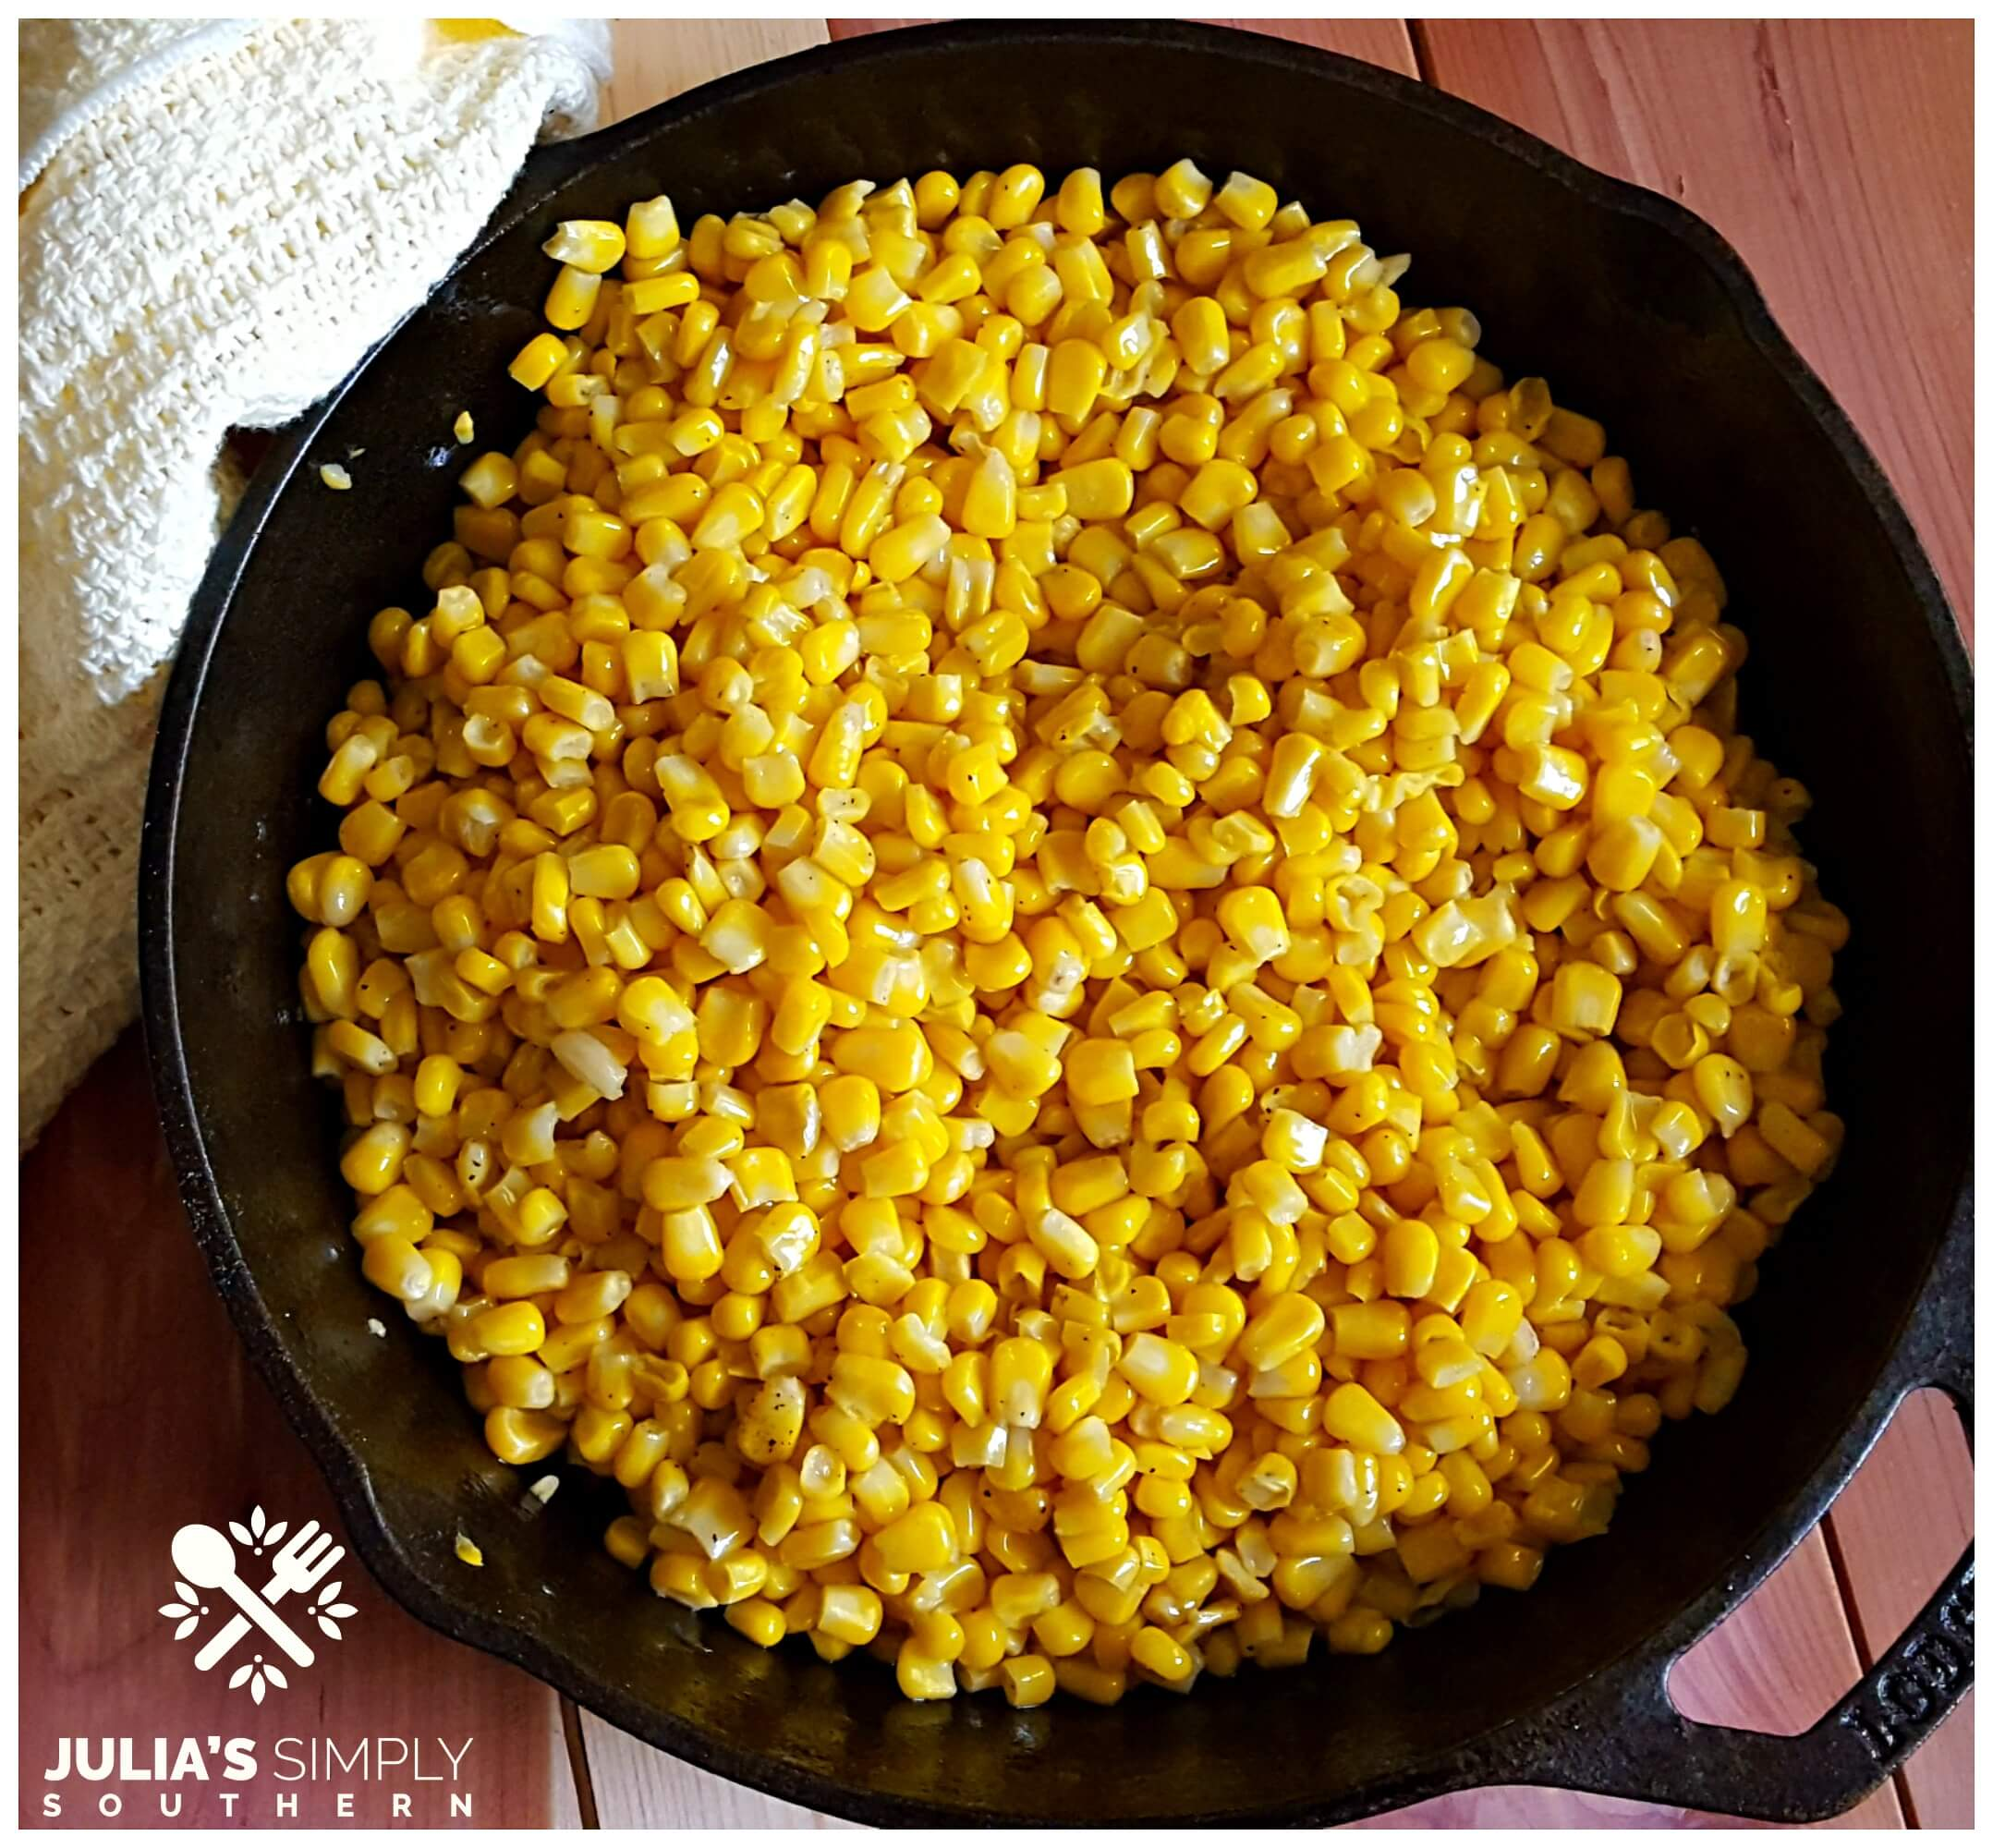 Southern fried corn in a cast iron skillet